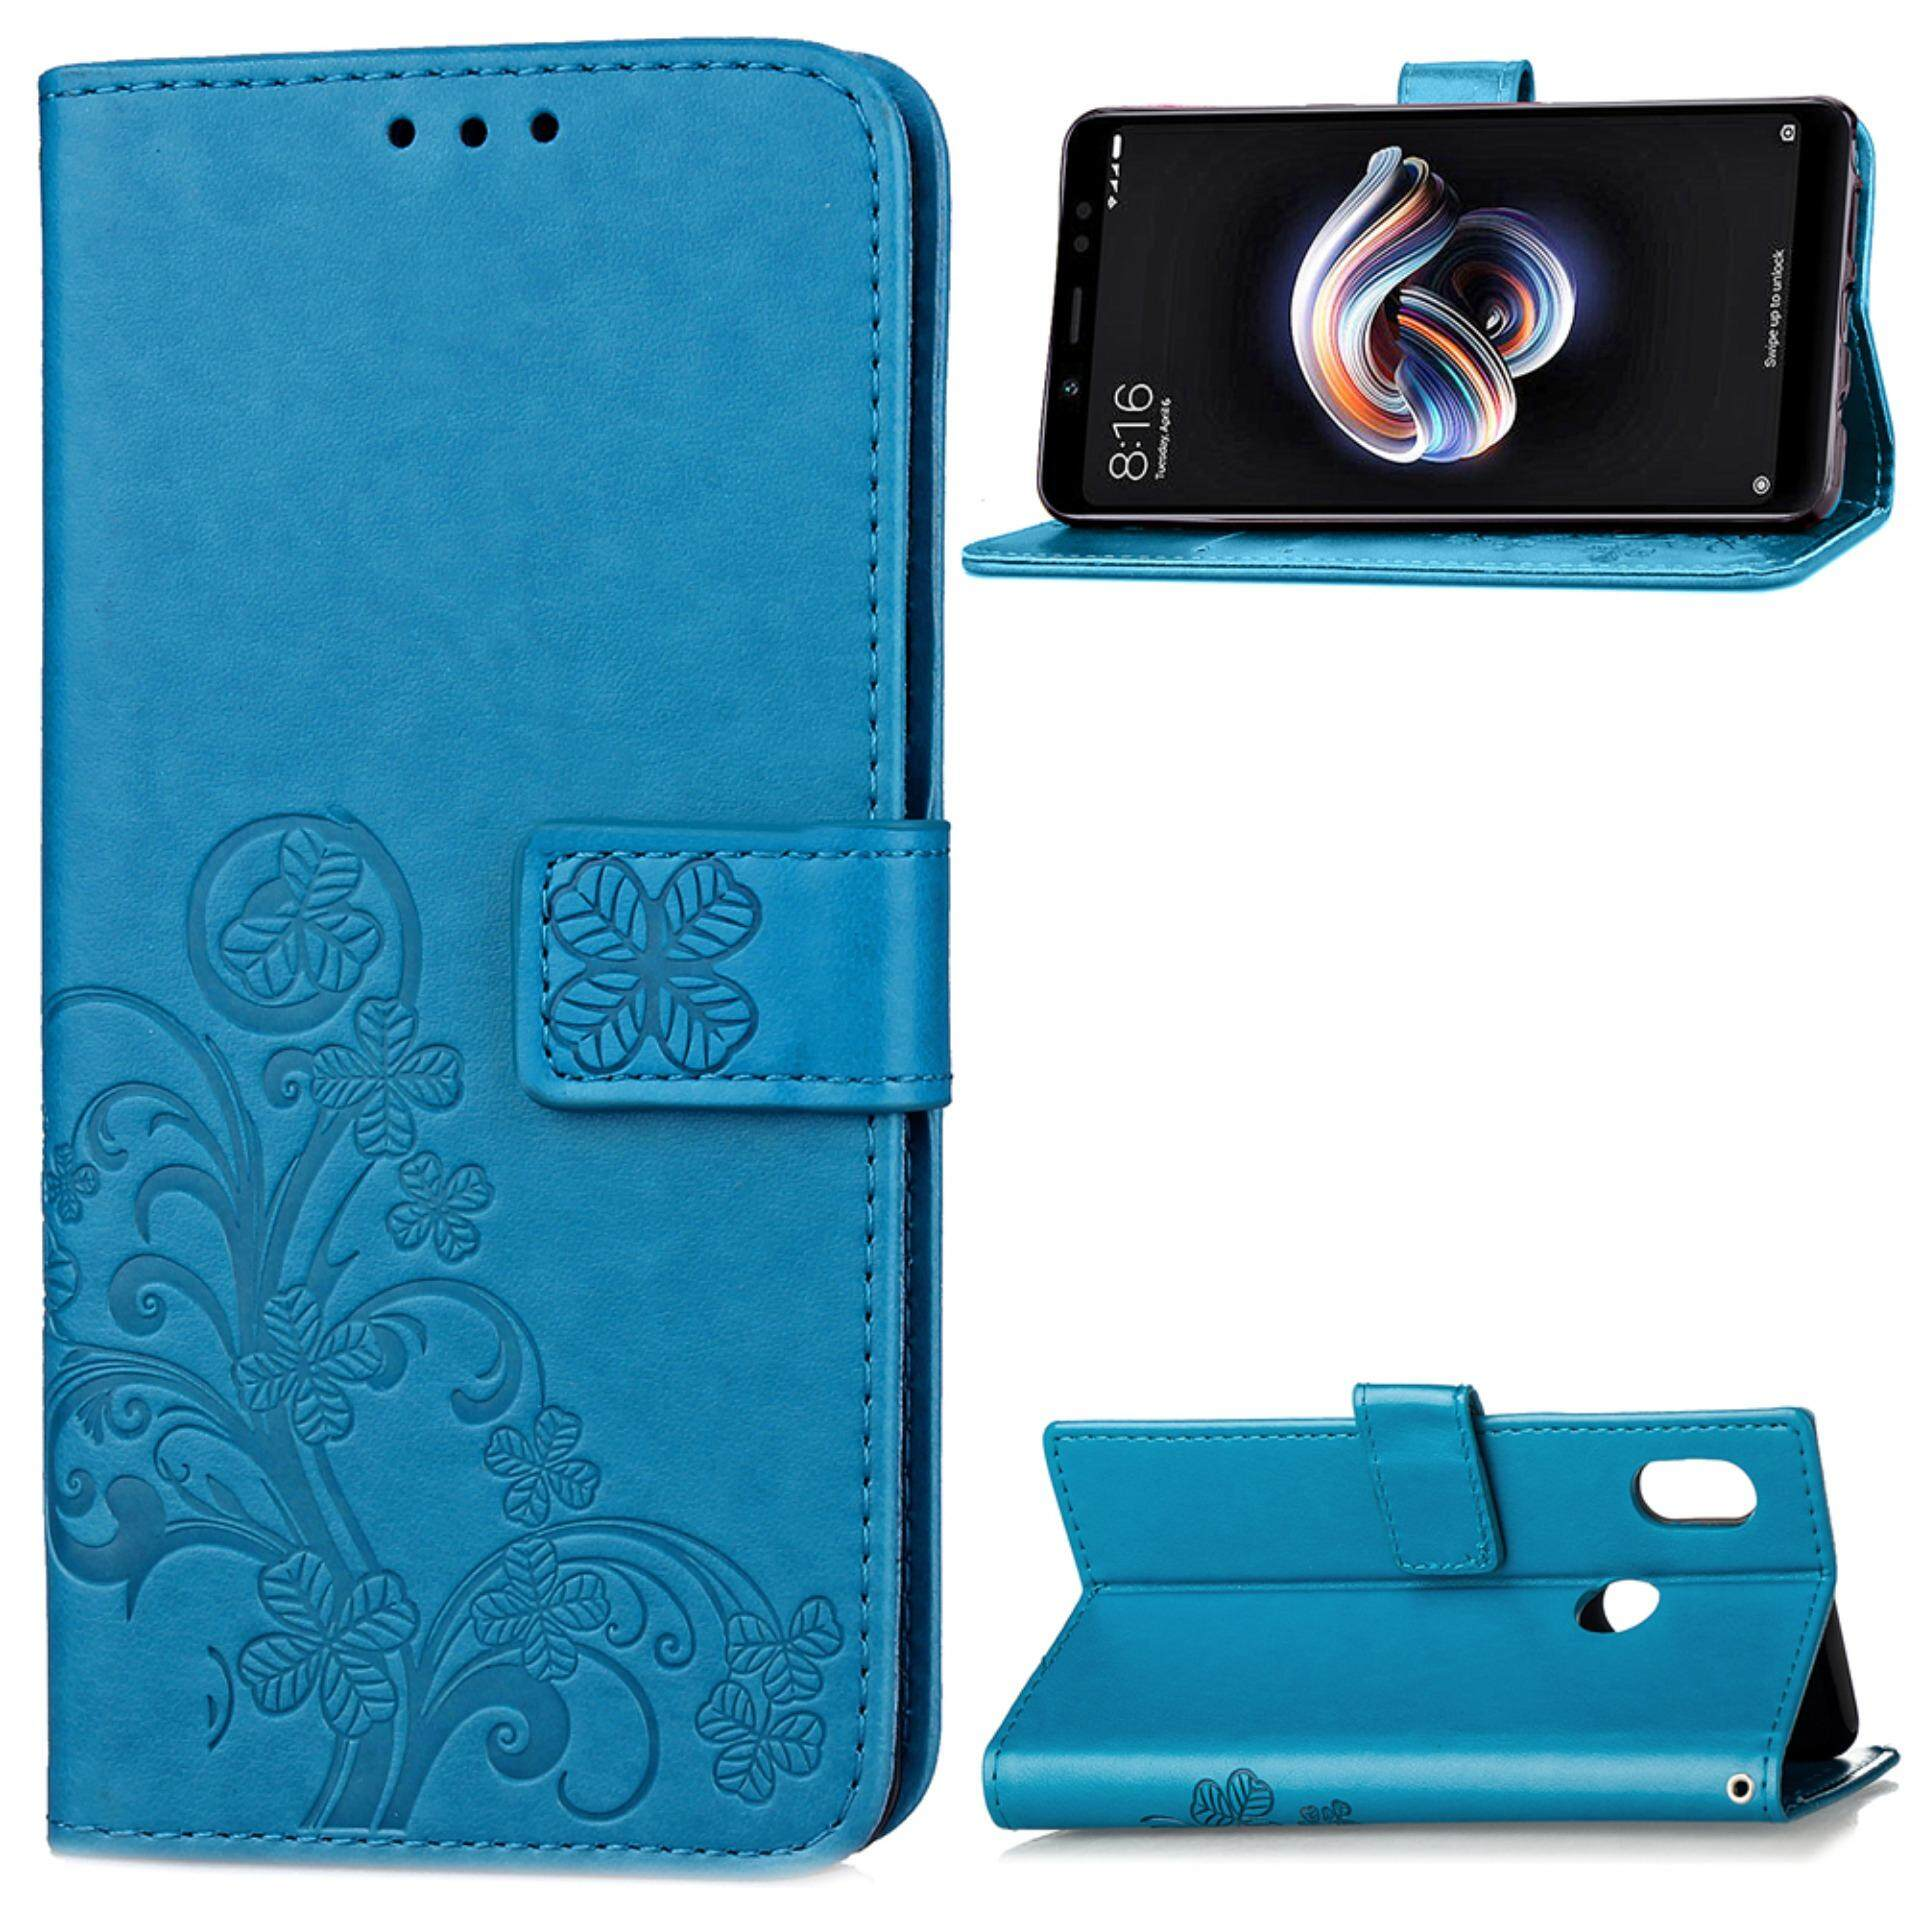 Flower Debossed Leather Flip Cover Case for Xiaomi Redmi Note 5 Pro - intl